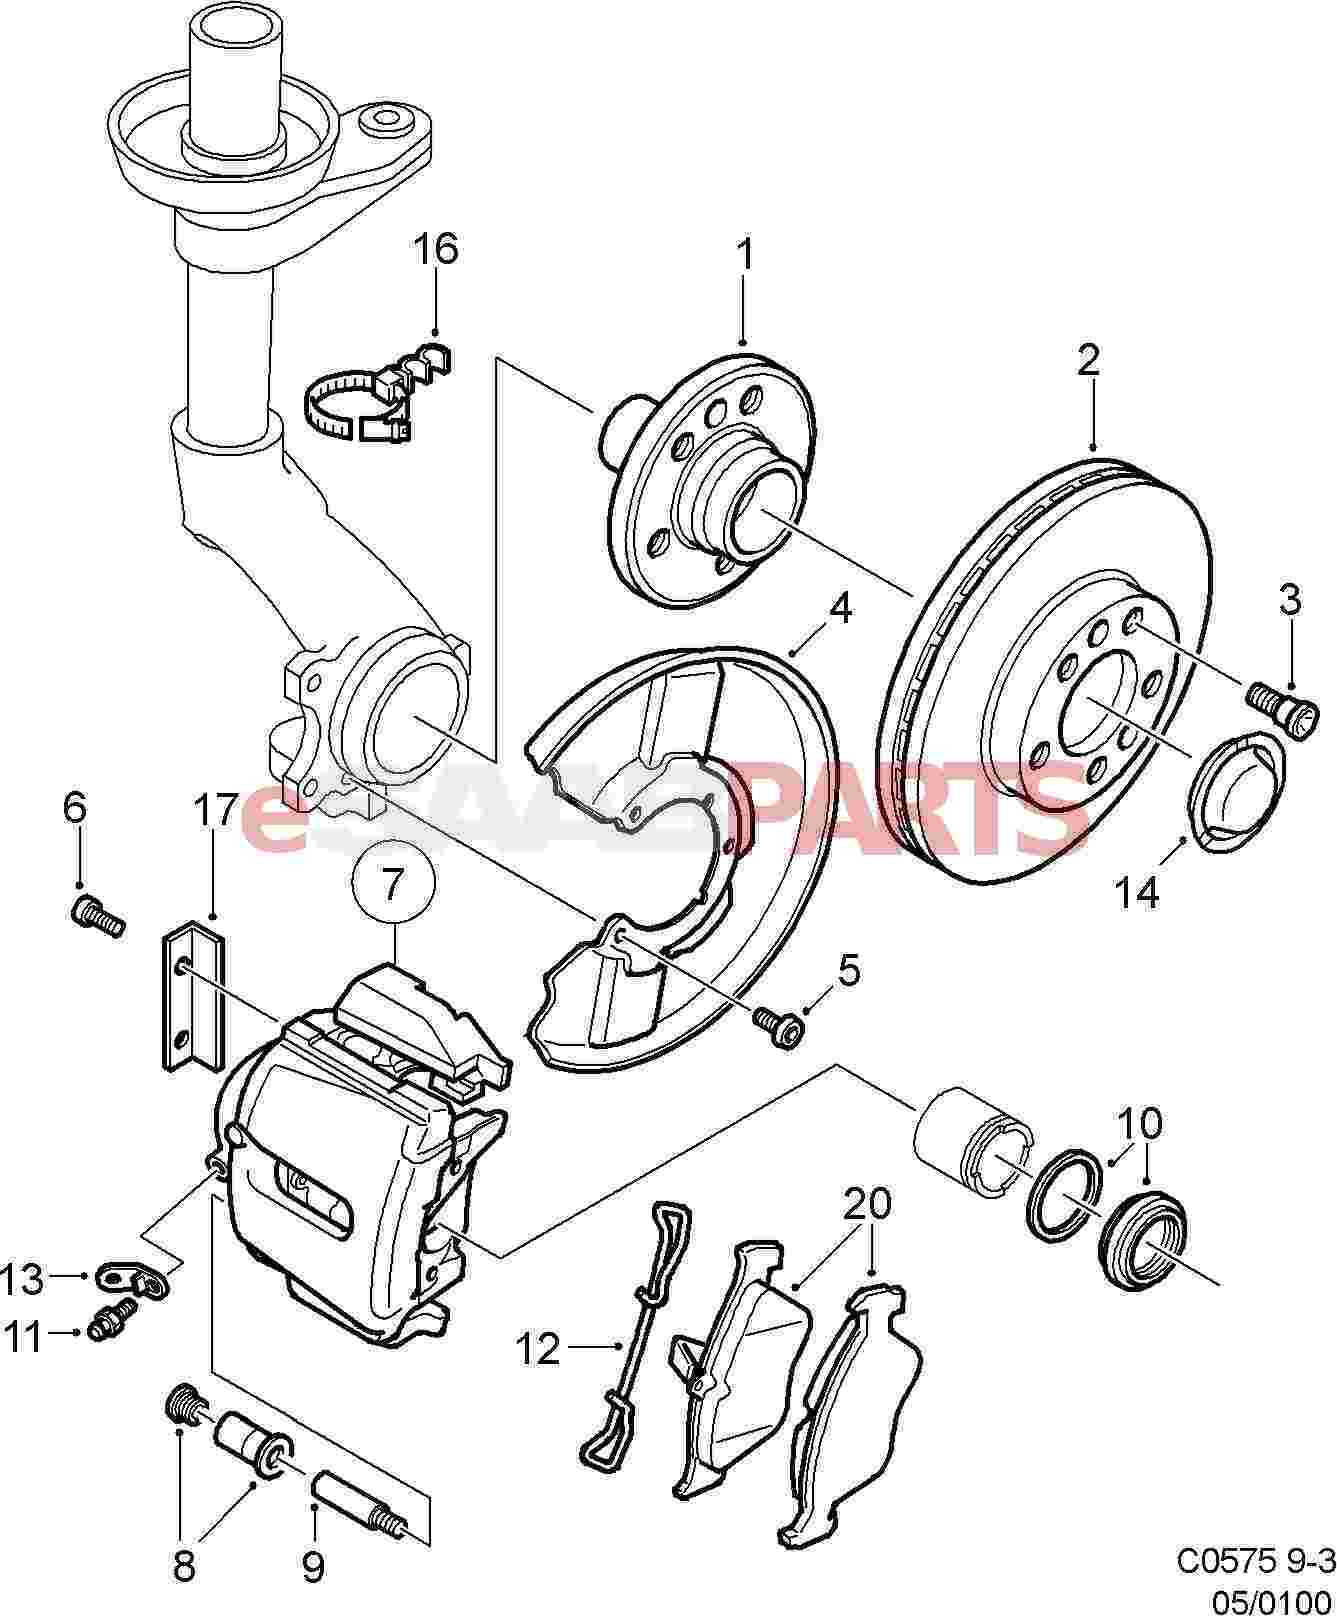 saab brakes diagram 4 1 artatec automobile de \u2022saab brakes diagram images gallery